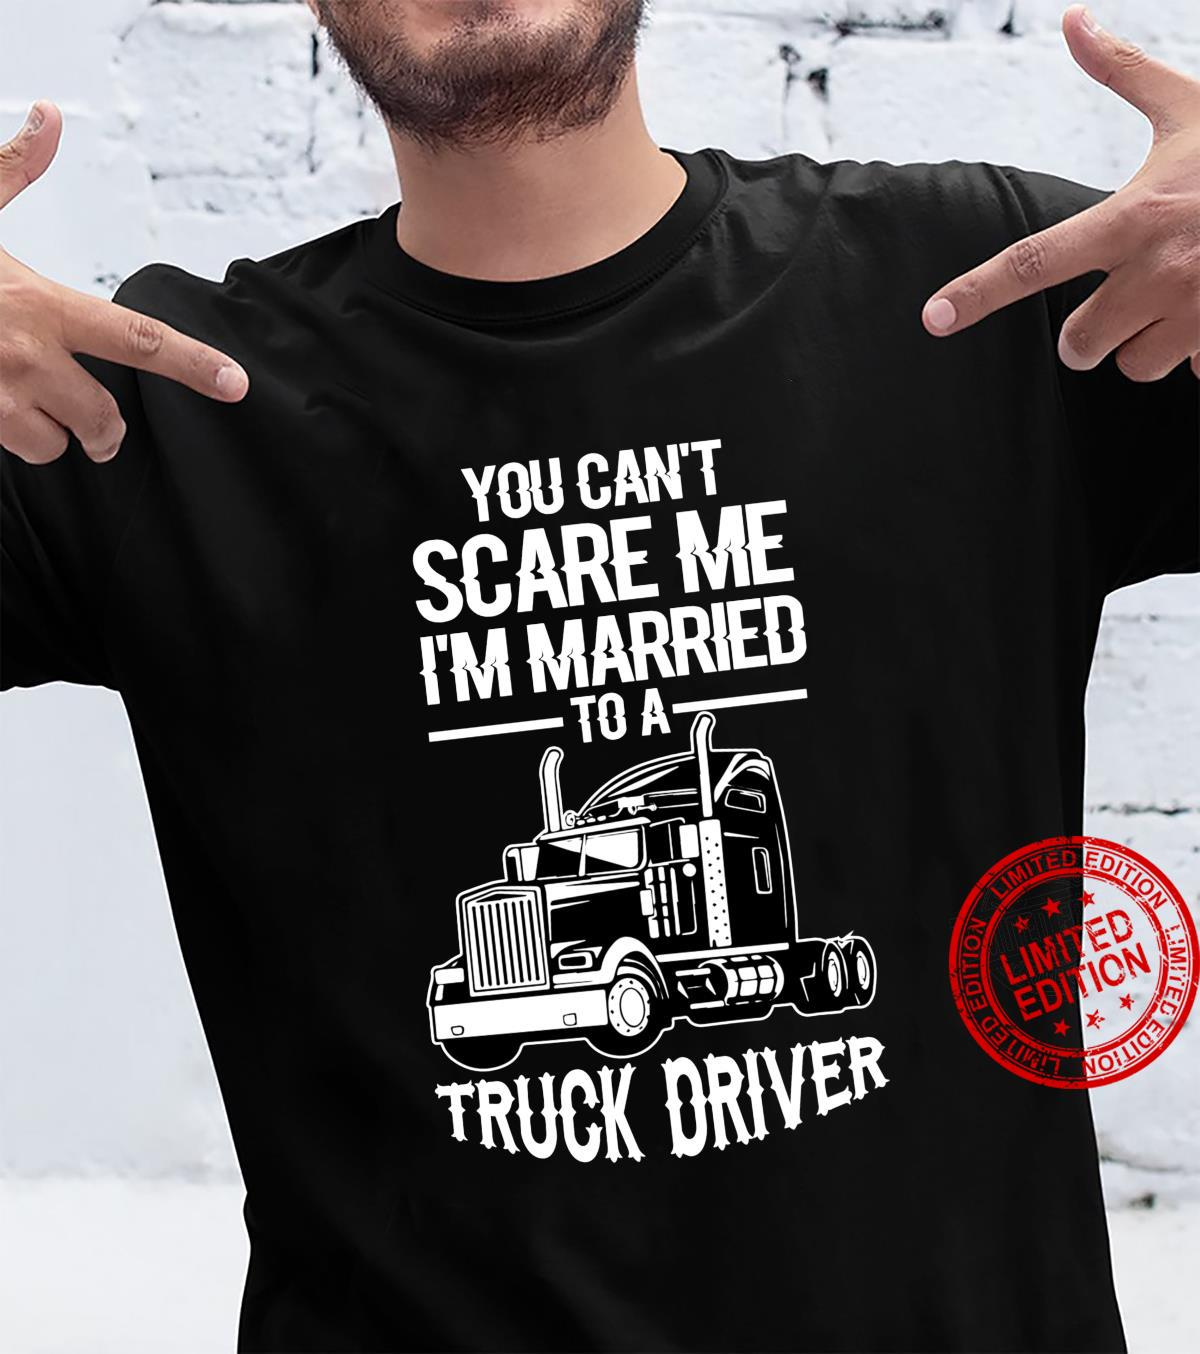 You can't scare me I'm married to truck driver trucker wife Shirt